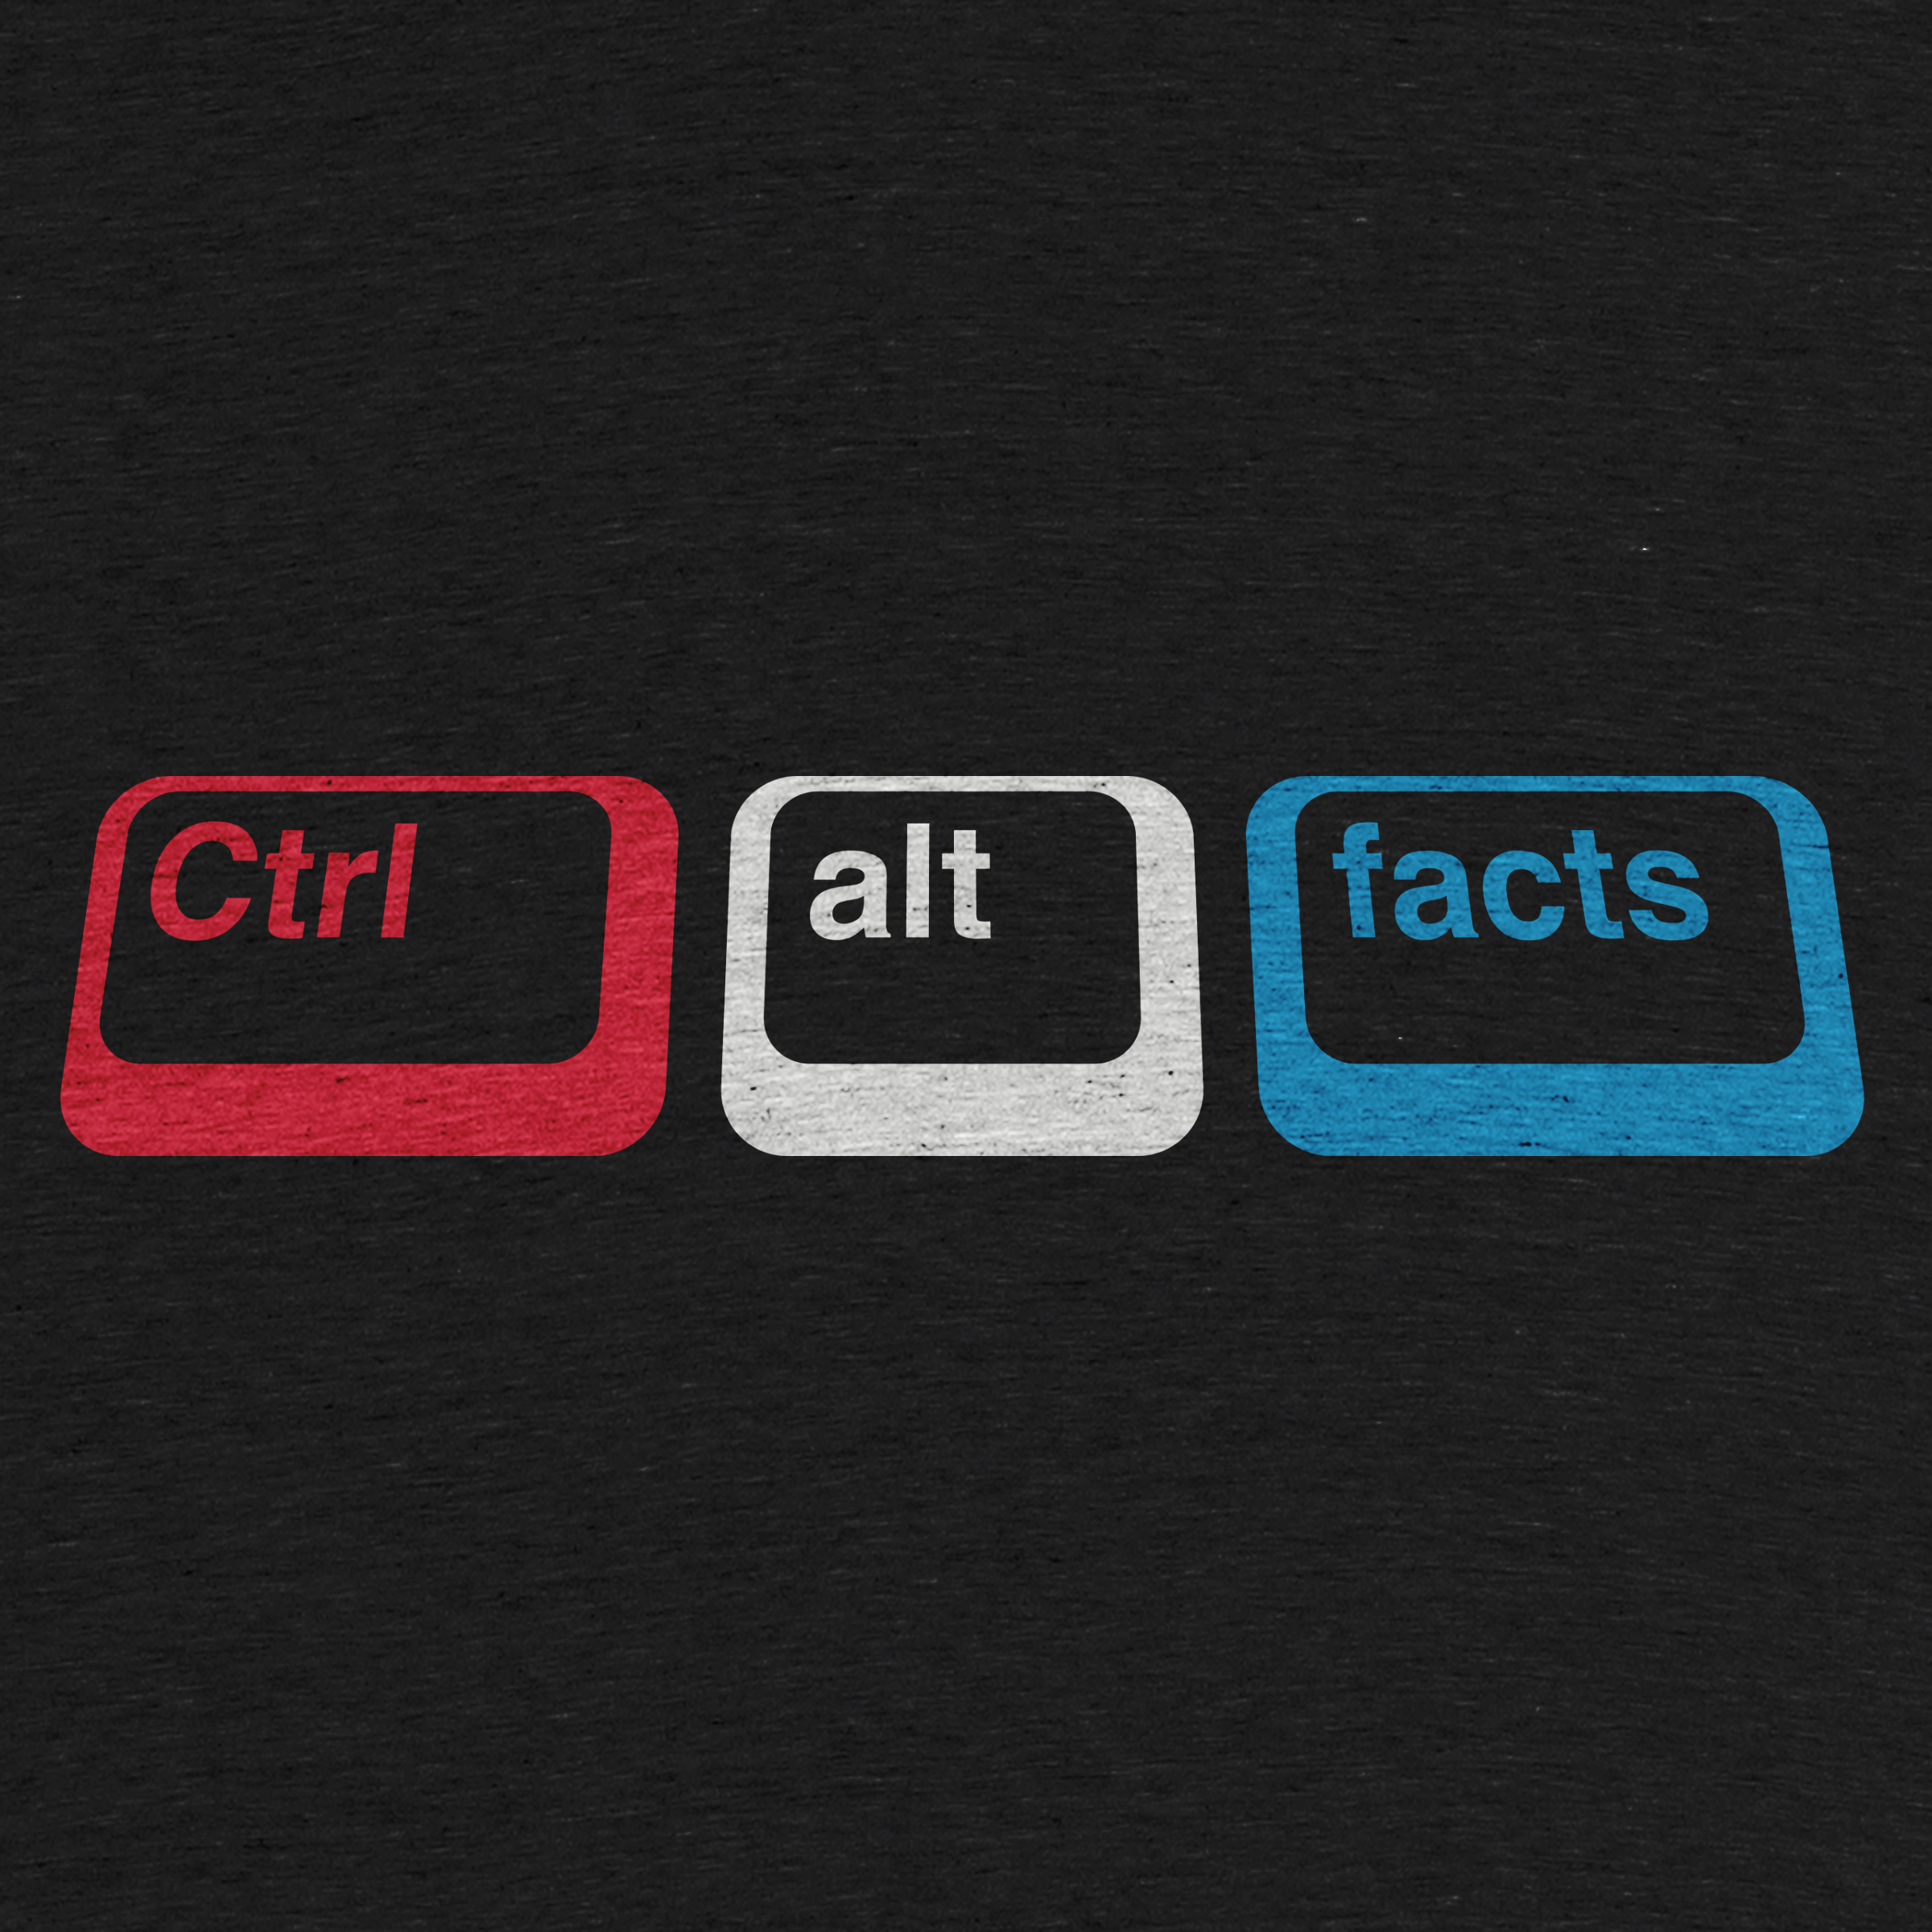 Ctrl + Alt + Facts